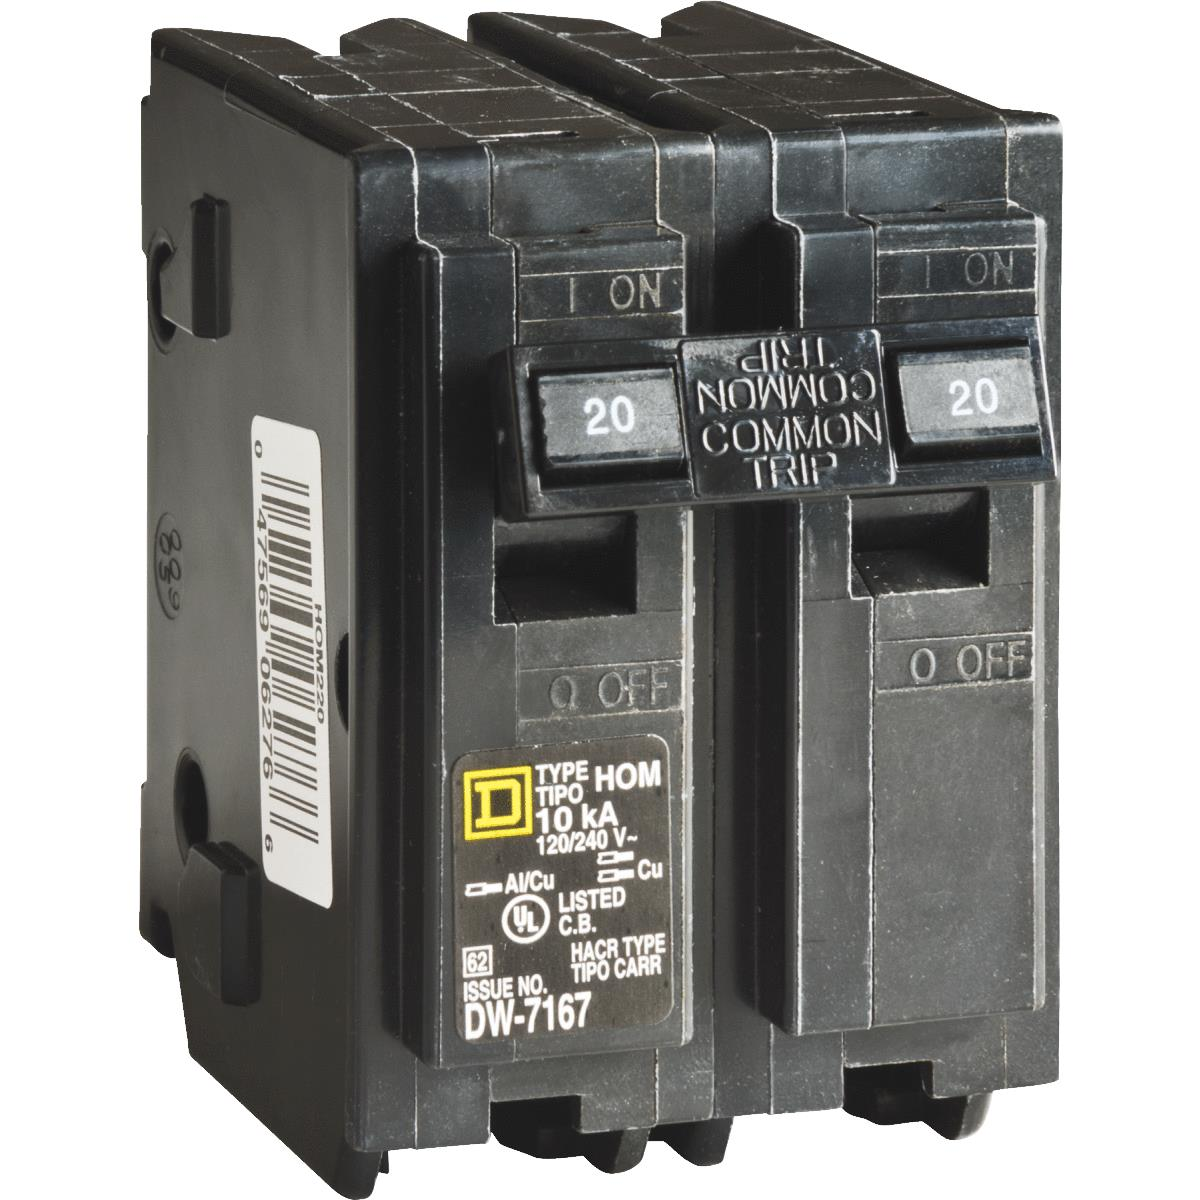 Case of 10 HomeLine Square D HOM120 Circuit Breakers 1 Pole,